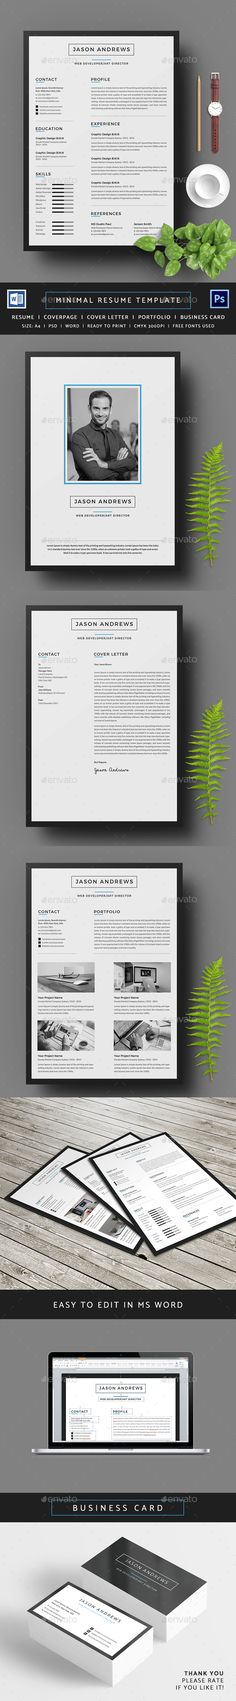 Resume Template Cv template, Resume cv and Creative cv template - easy resumes